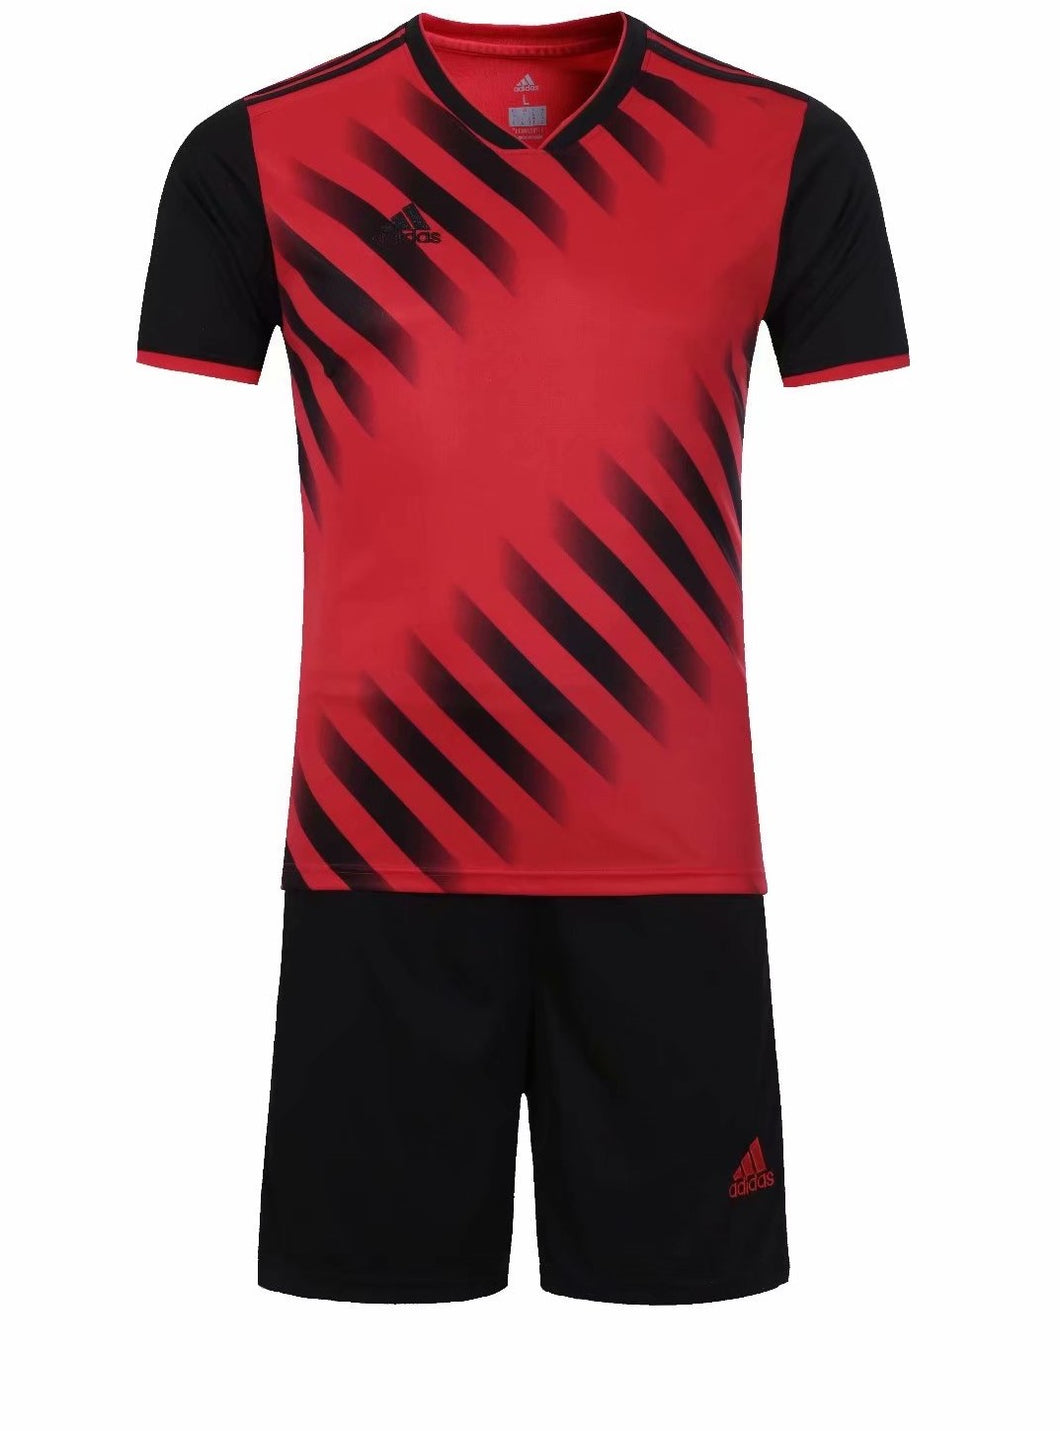 Adidas Full Football Kit Adult Sizes only - Red and Black with Faded stripe